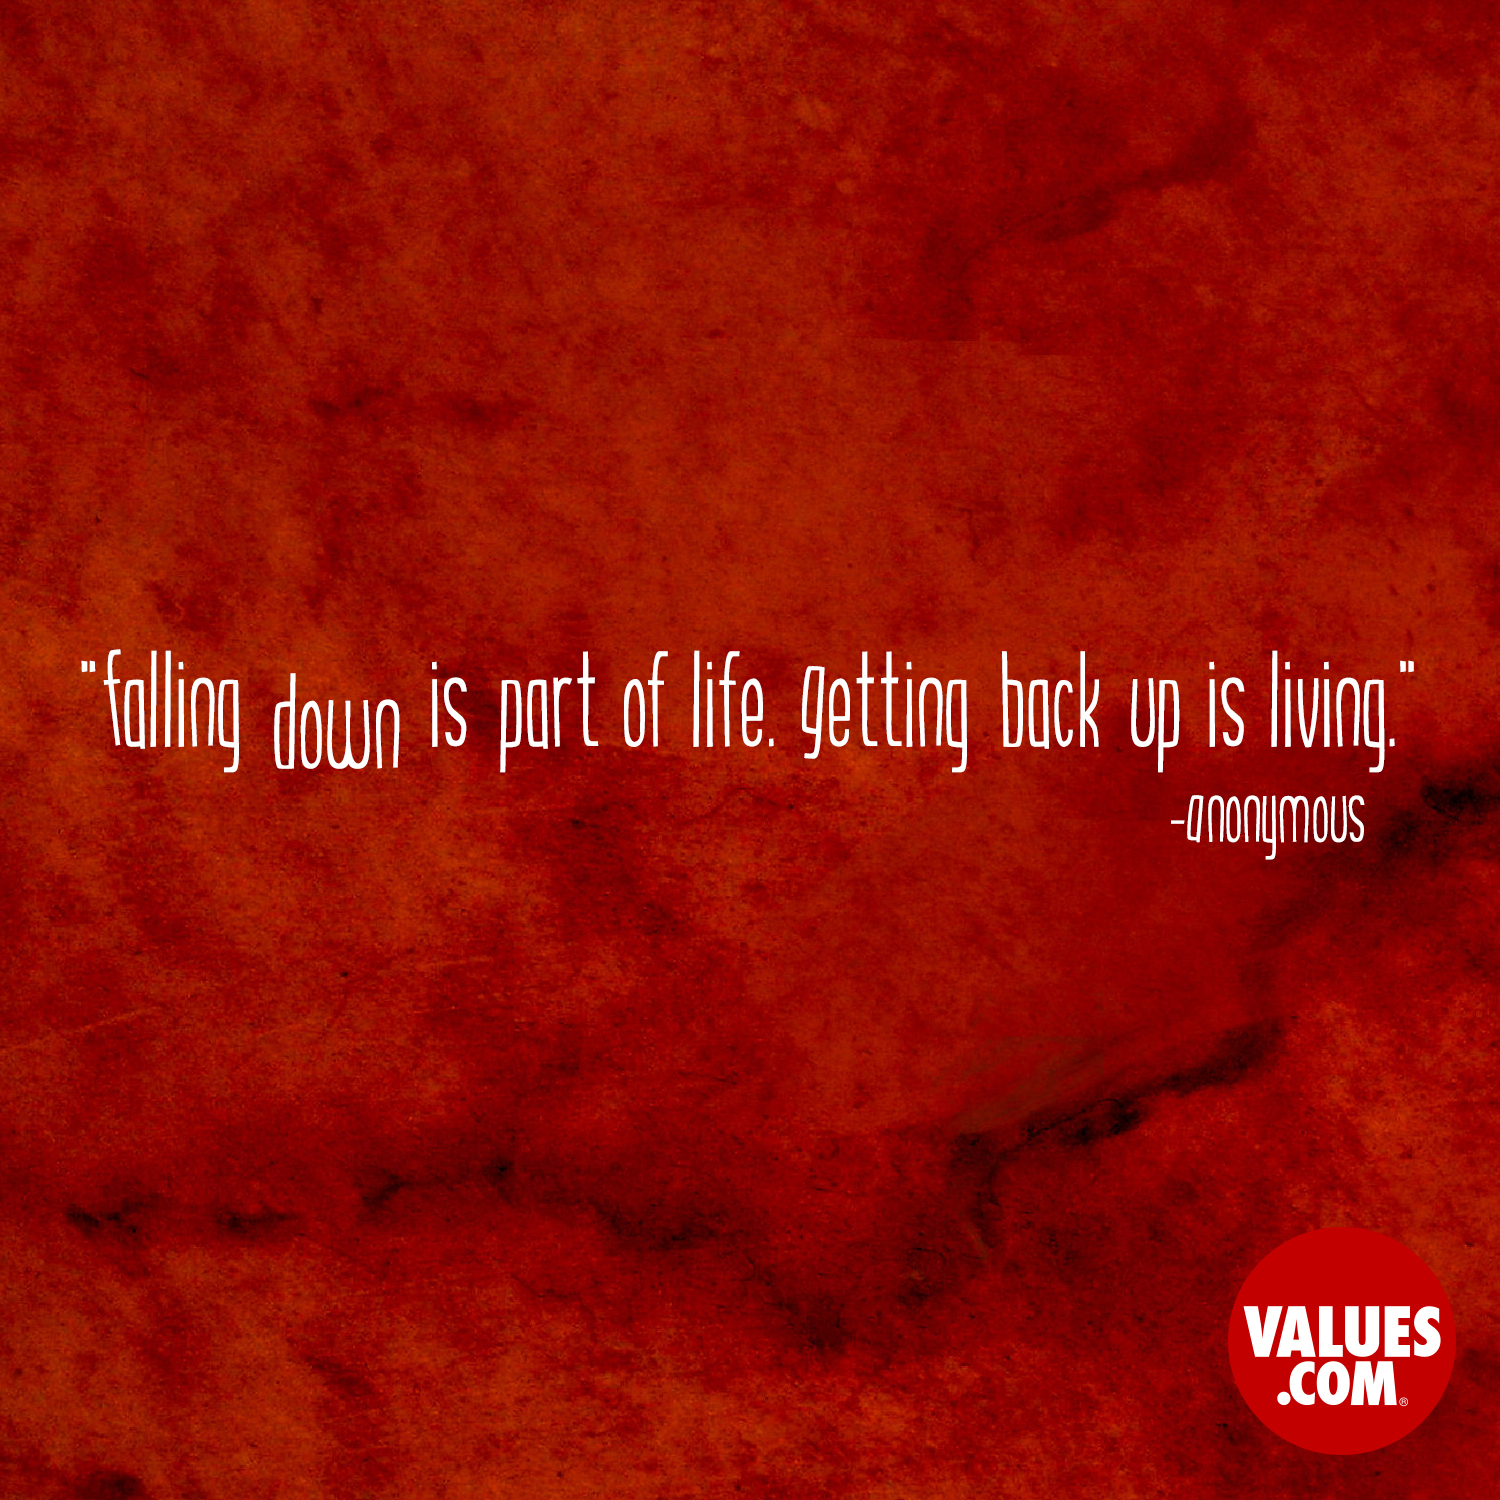 Falling down is part of life. Getting back up is living. —Anonymous